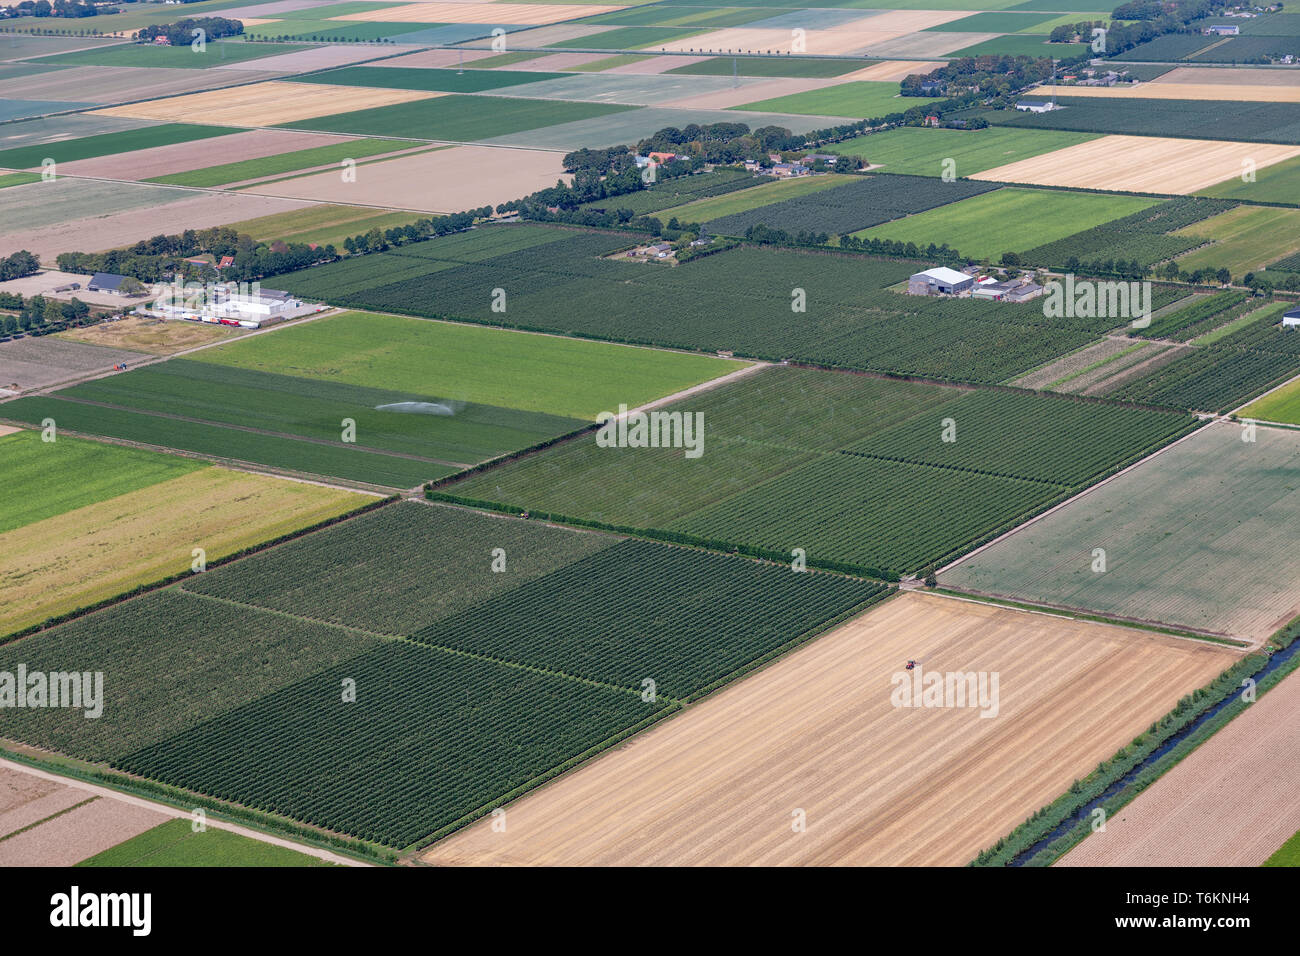 Aerial view Dutch polder with agricultural landscape and farmhouses - Stock Image